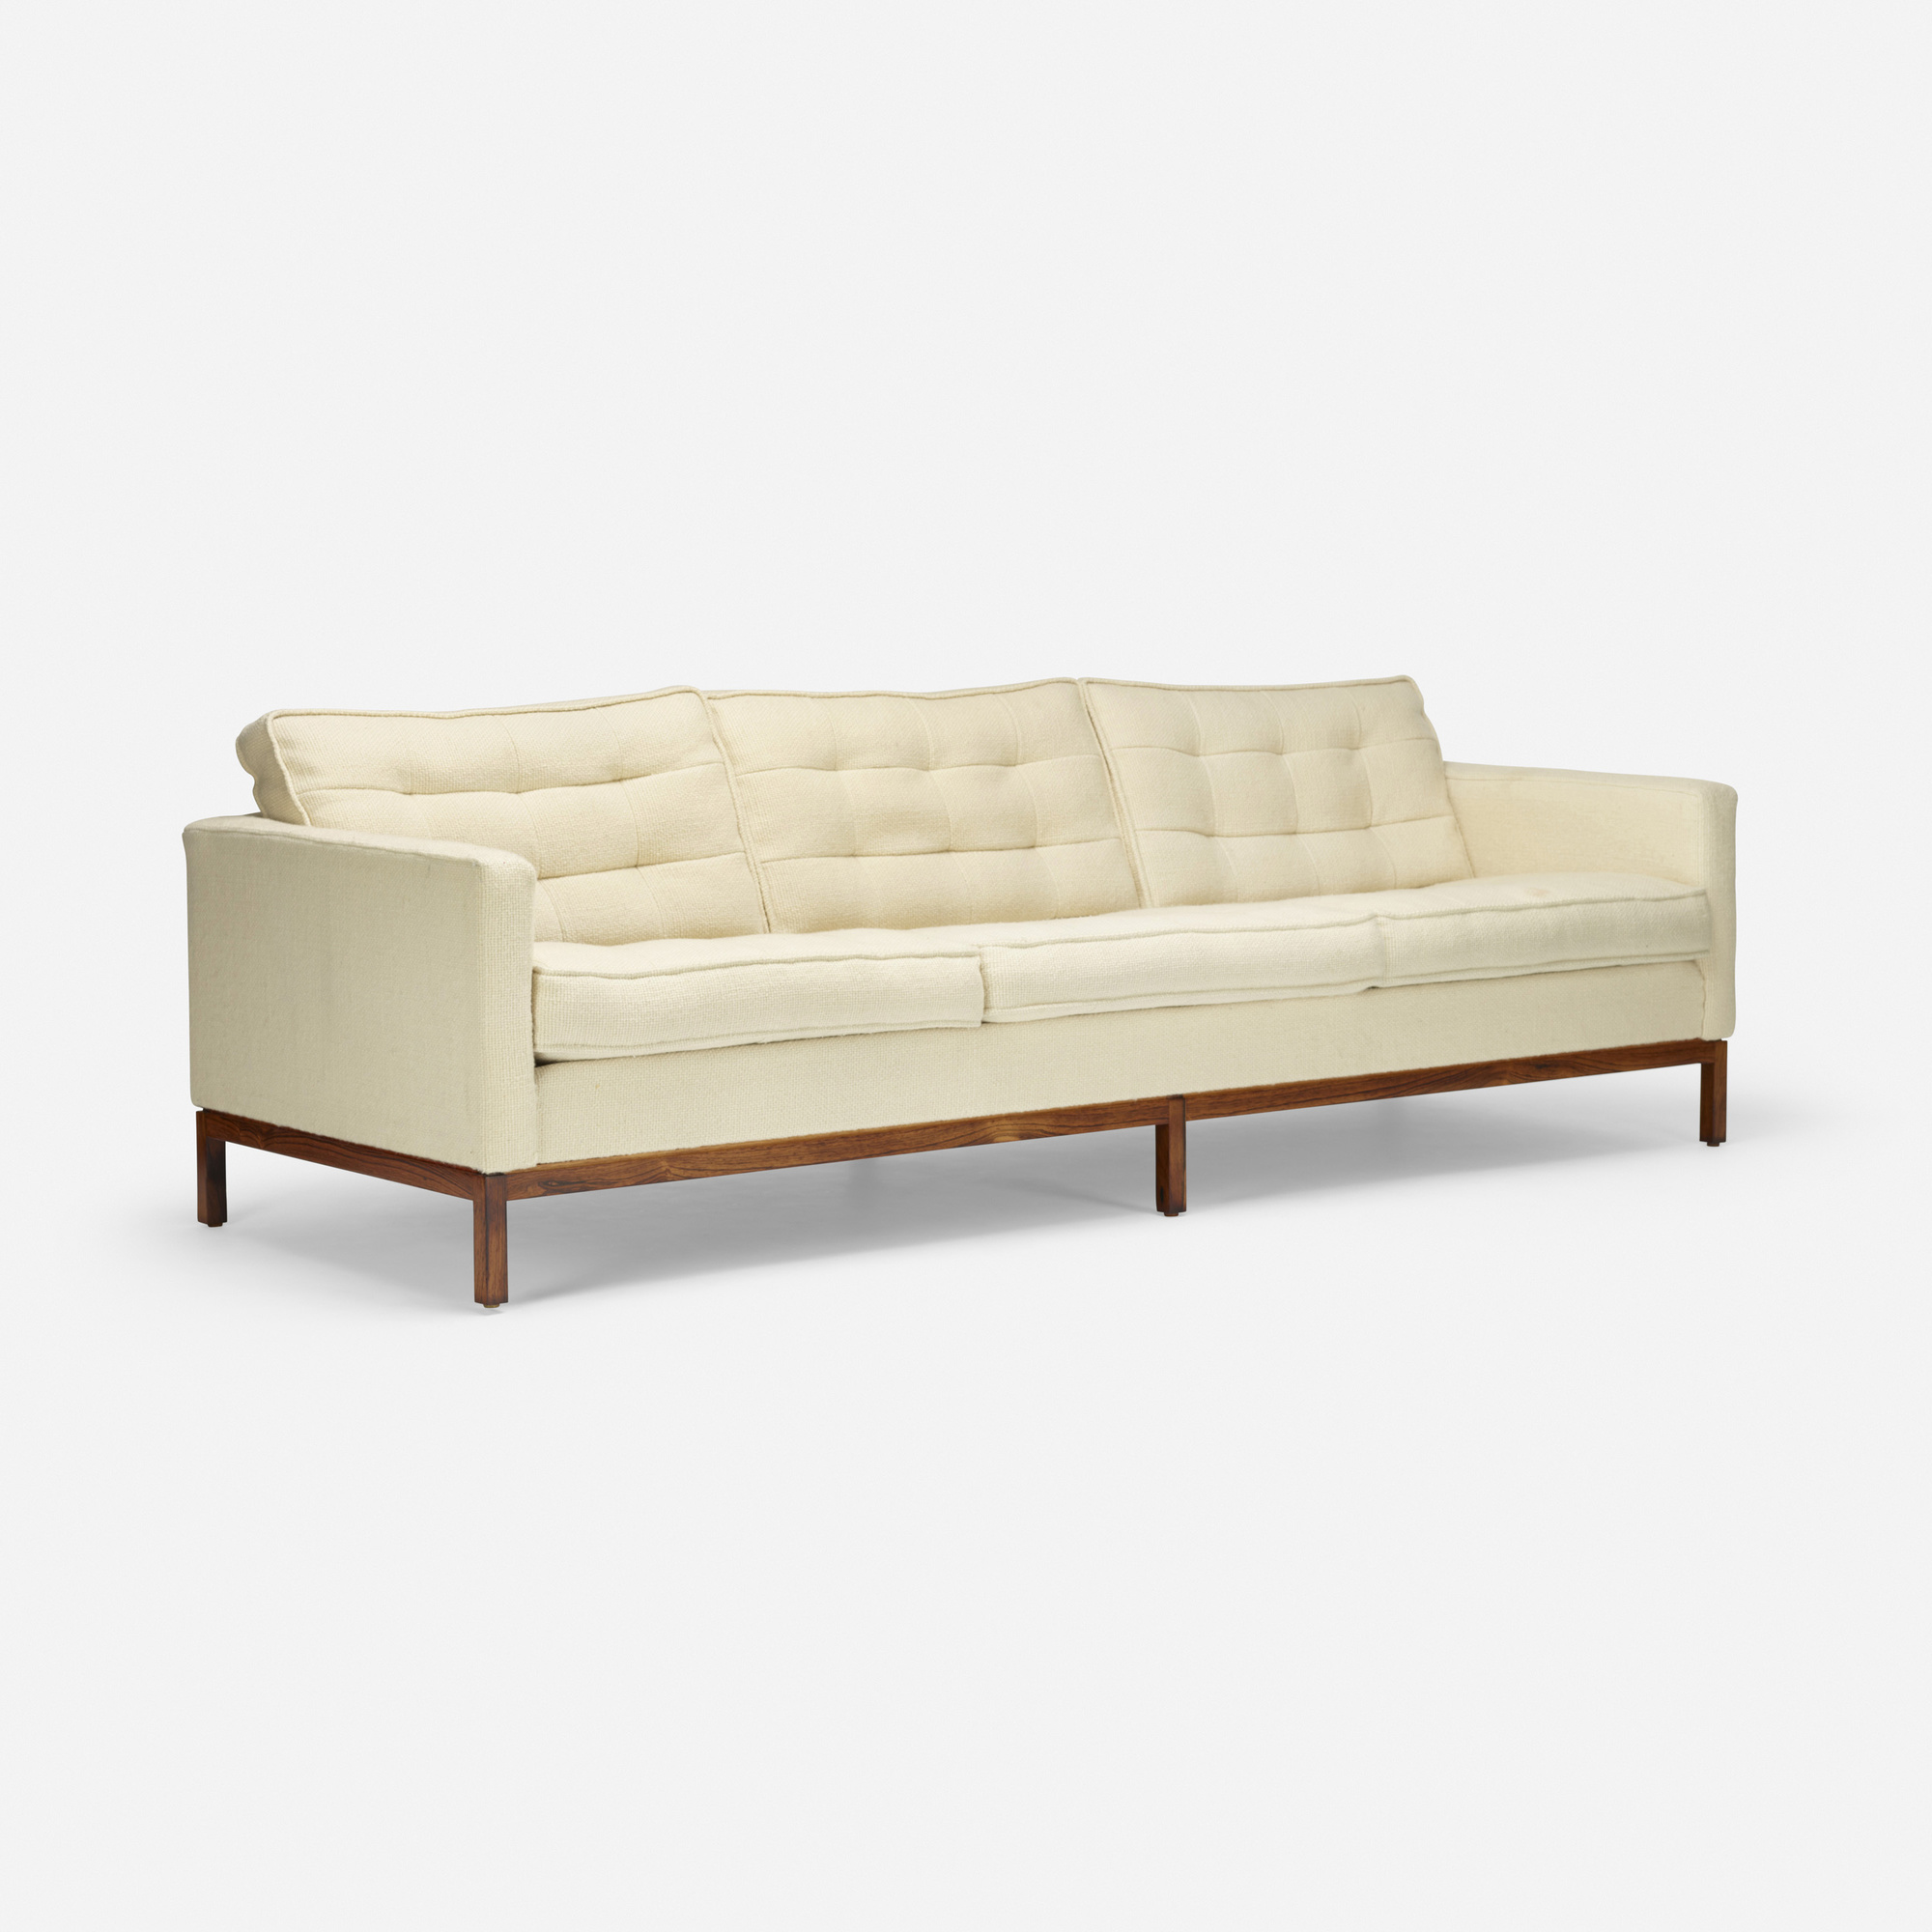 393: Florence Knoll / sofa (1 of 3)